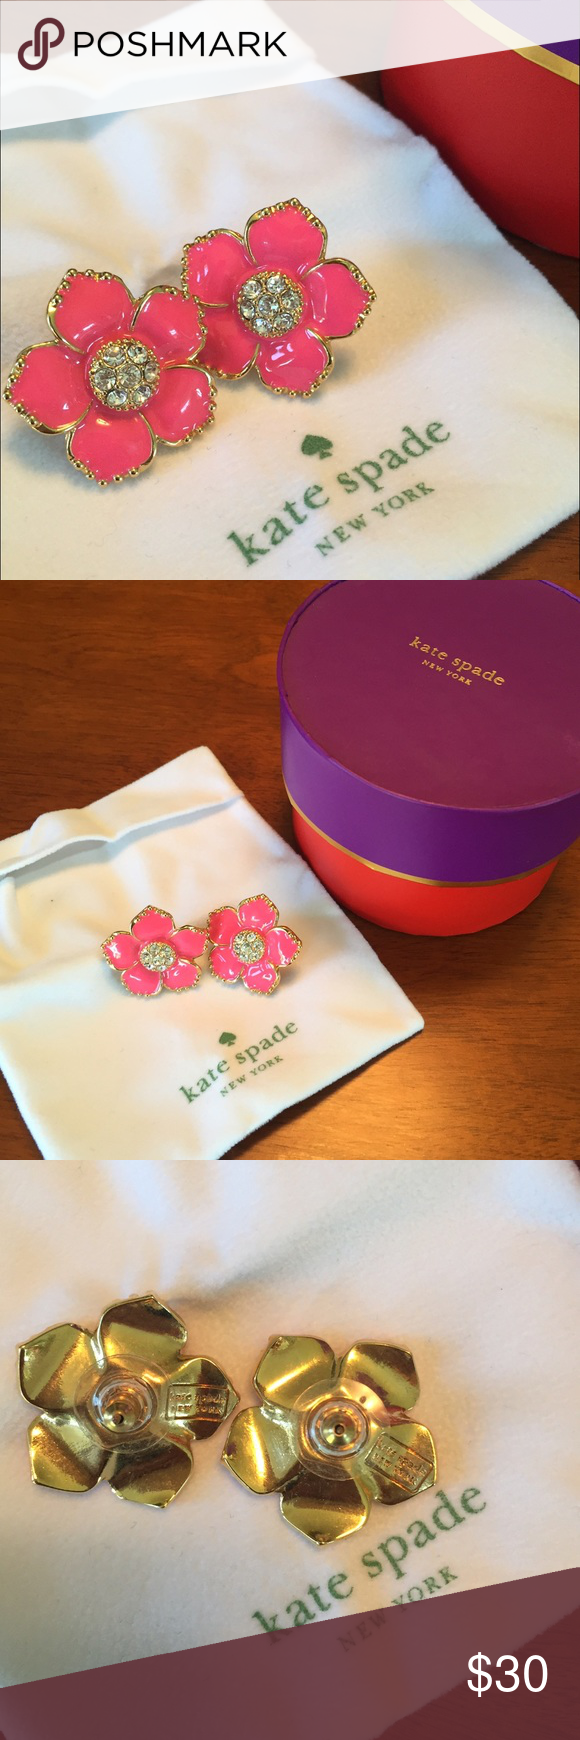 Kate Spade Pink Flower Earrings  Lovely, bright pink and gold flower earrings by Kate Spade. Perfect for that little pop of color to complement any fun summer outfit. kate spade Jewelry Earrings